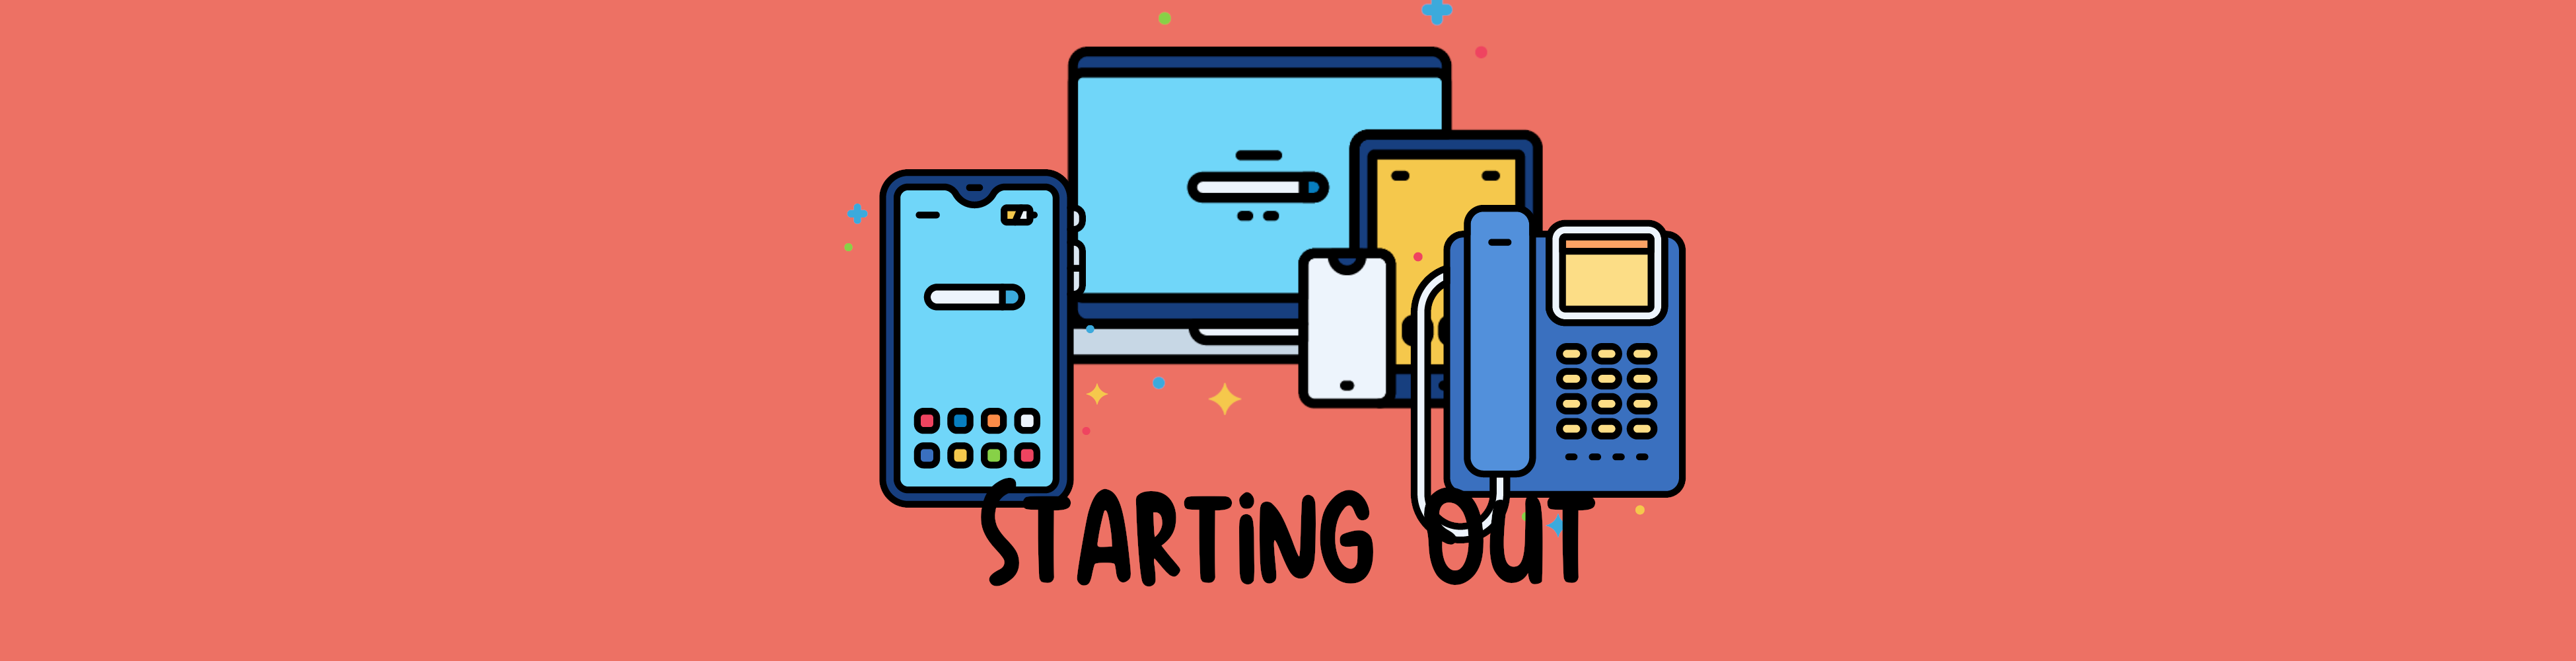 """Best VoIP for Small Businesses: The Yay.com """"Starting Out"""" Plan"""